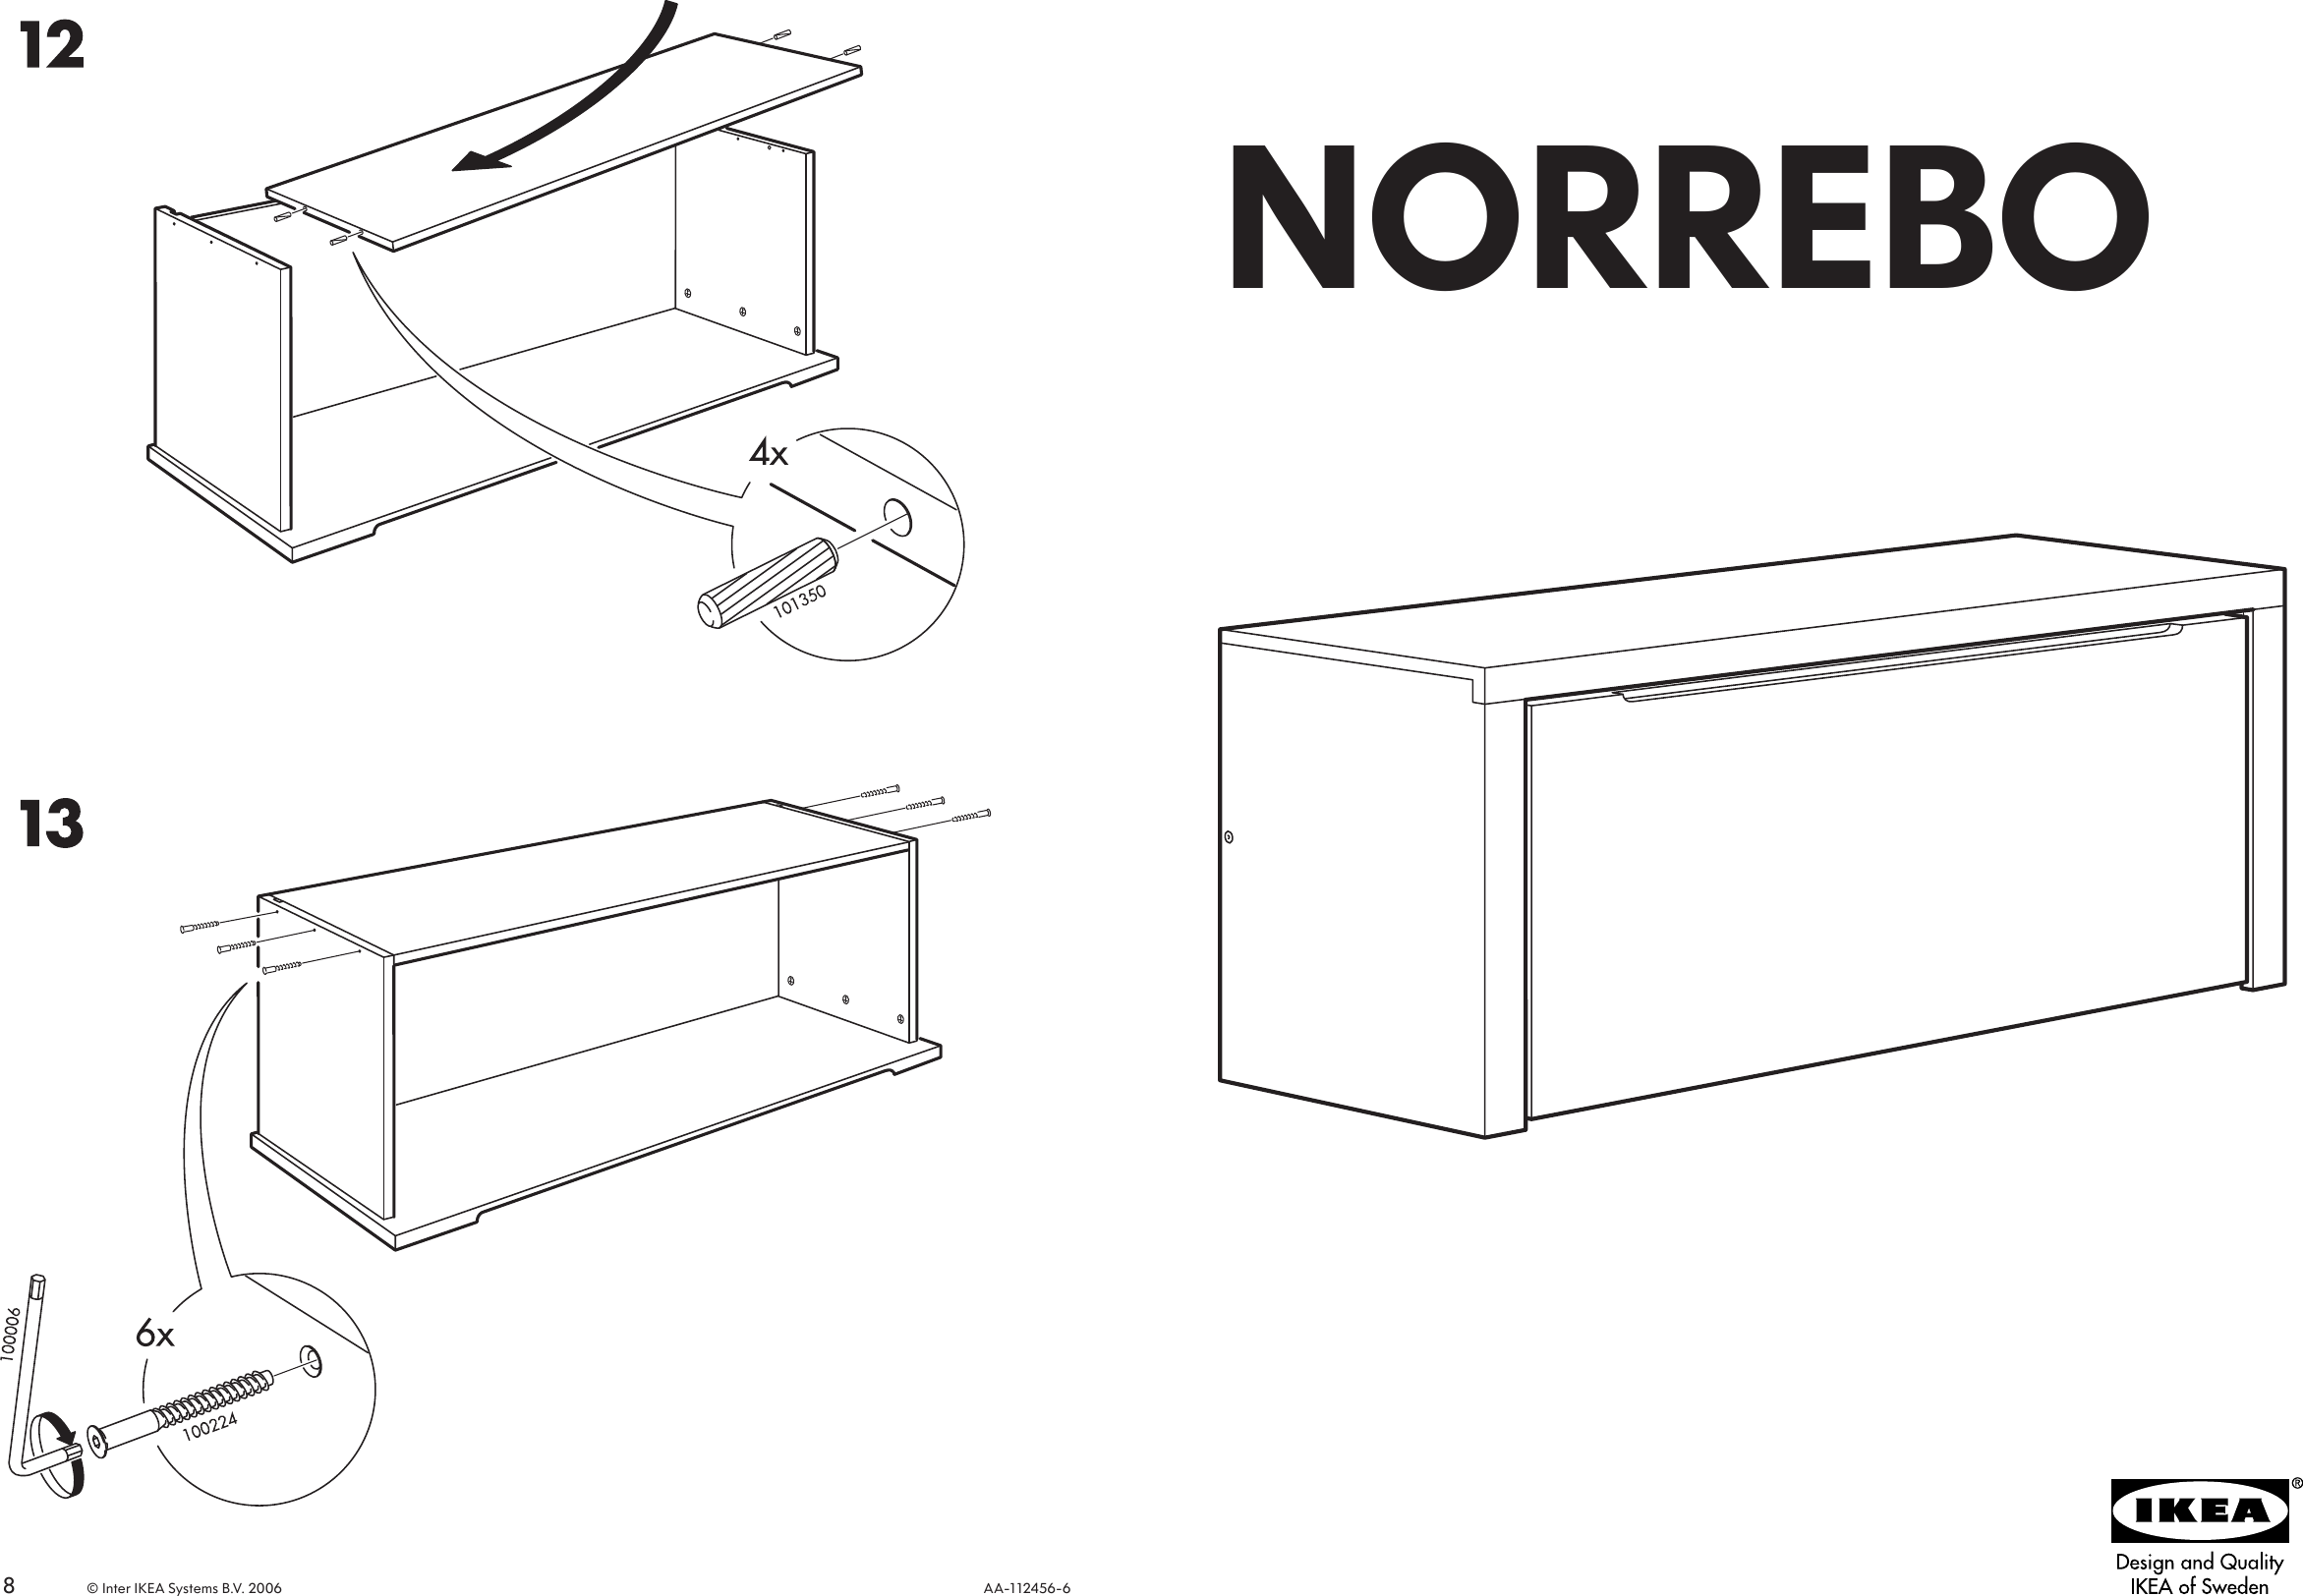 Superb Ikea Norrebo Storage Bench 44X17 Assembly Instruction Ocoug Best Dining Table And Chair Ideas Images Ocougorg